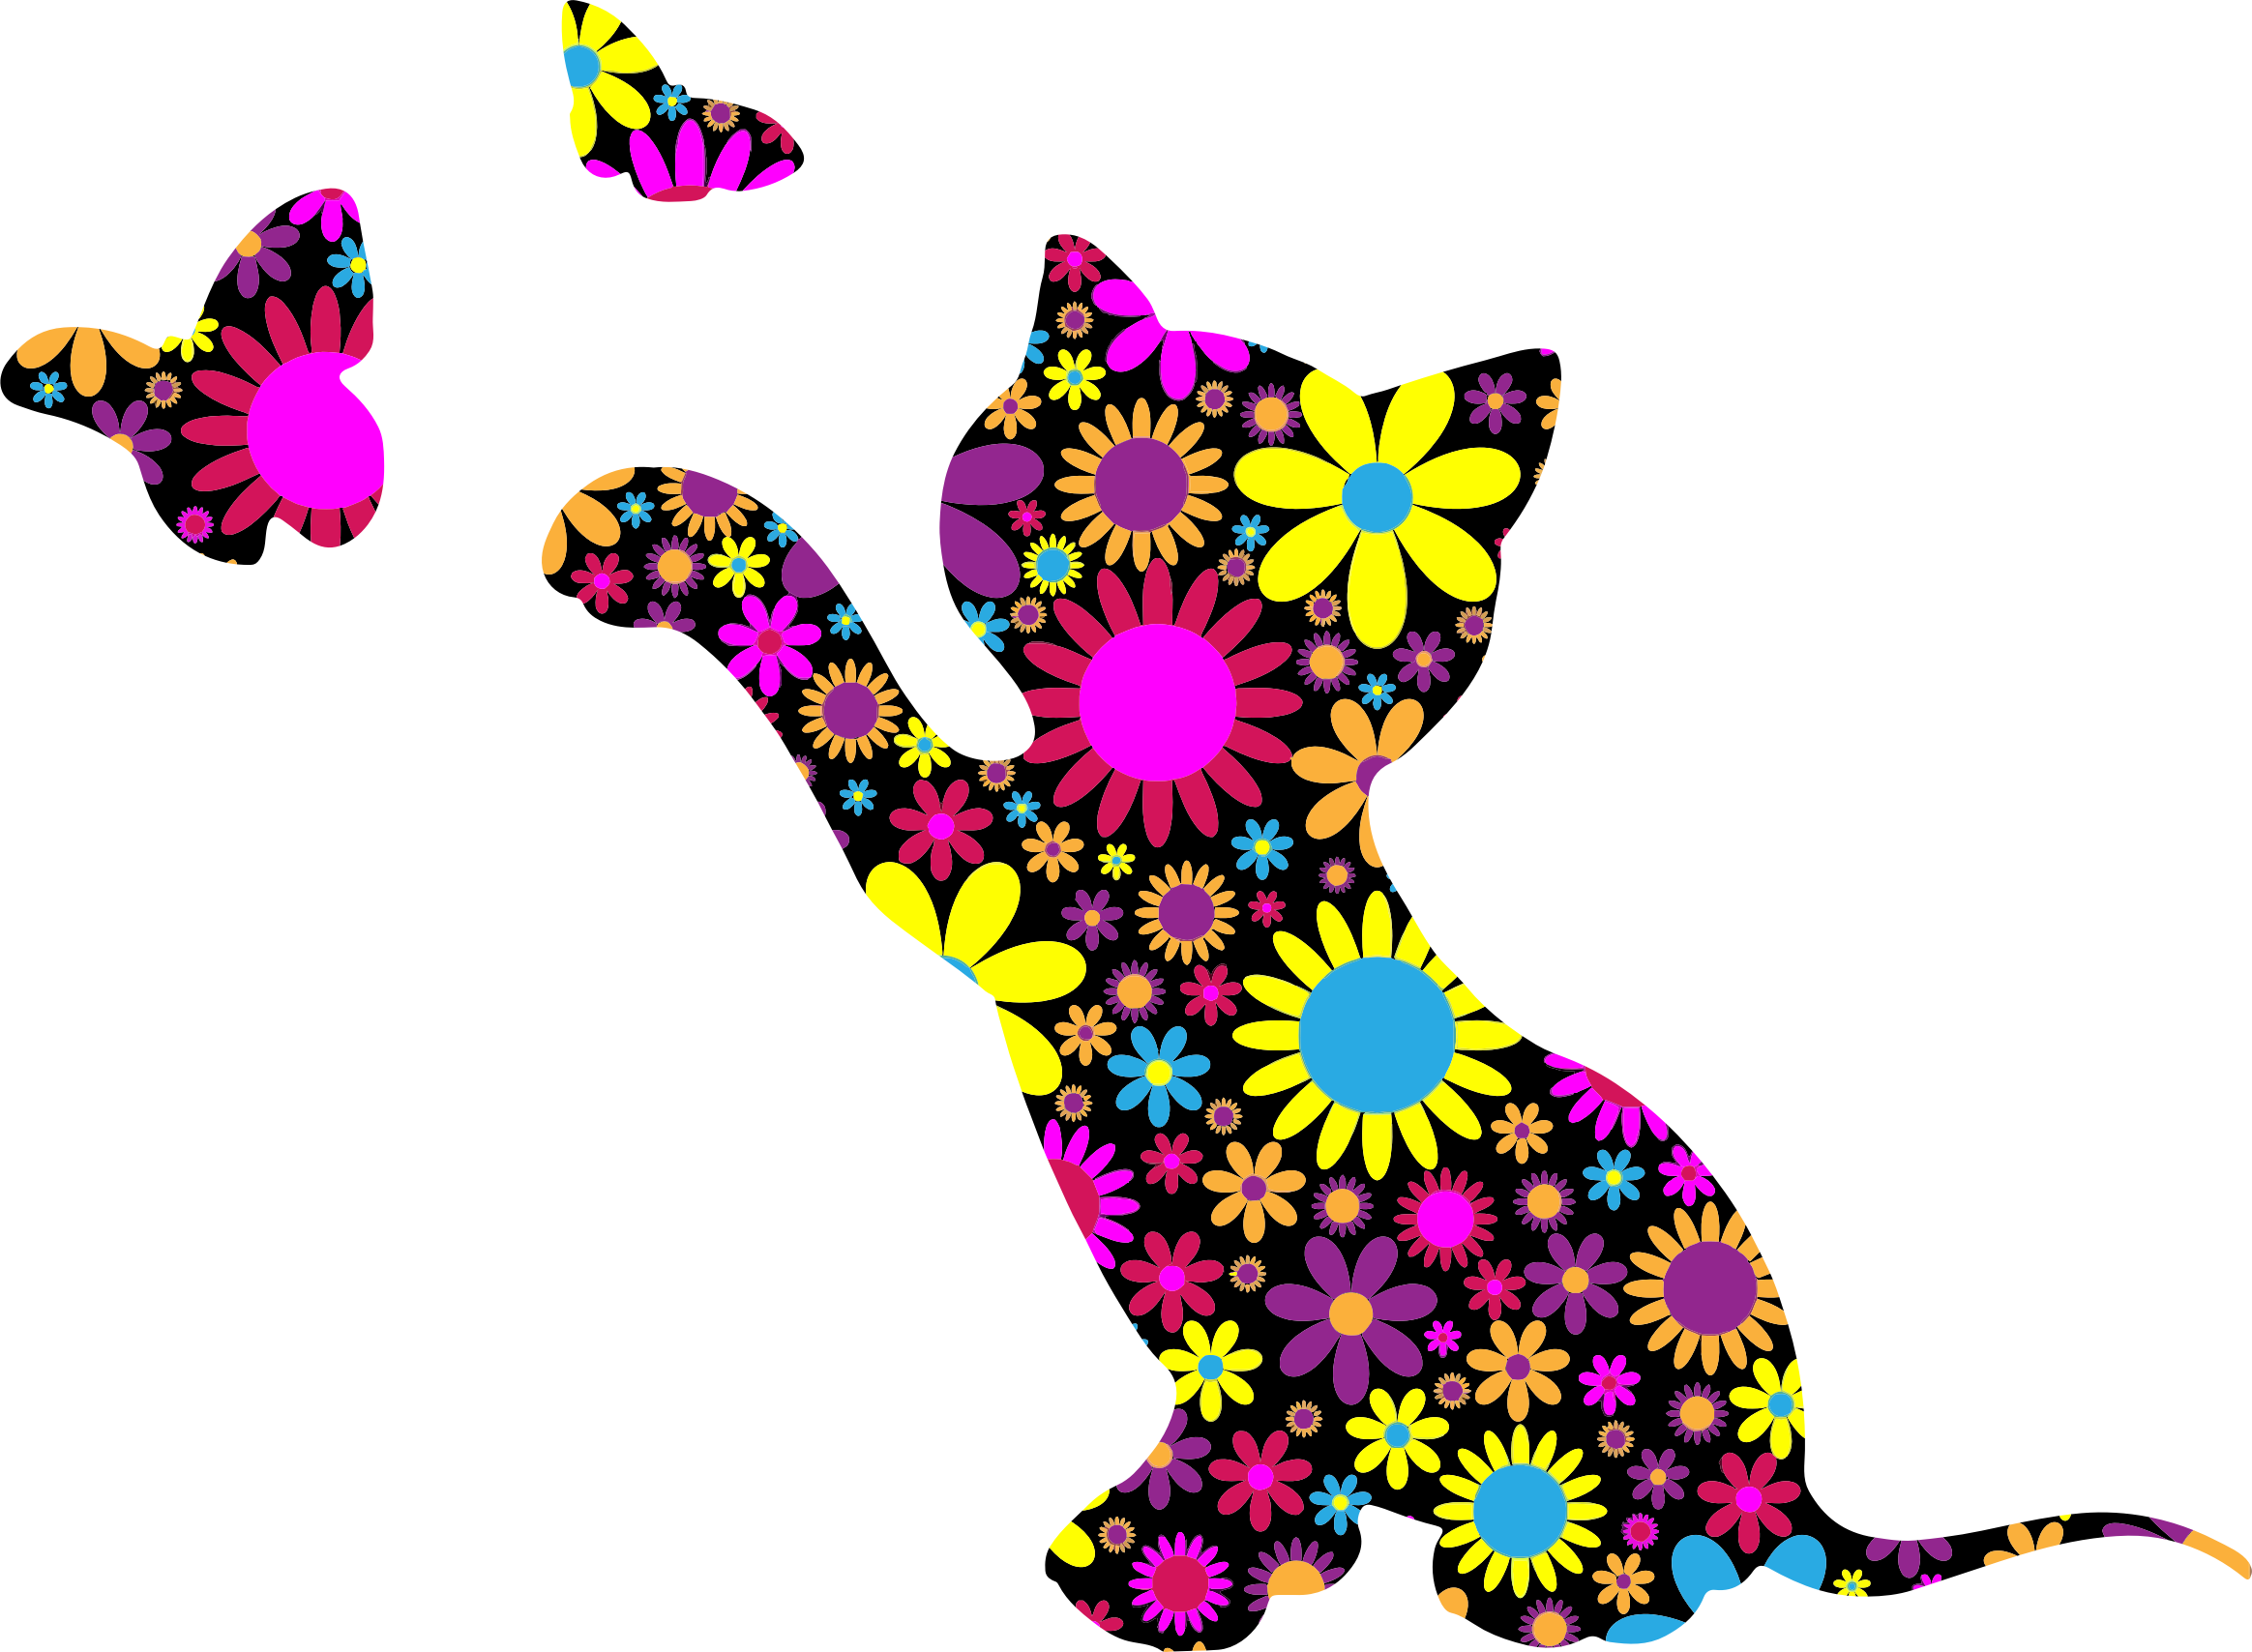 Kitten clipart flower. Floral playing with butterflies